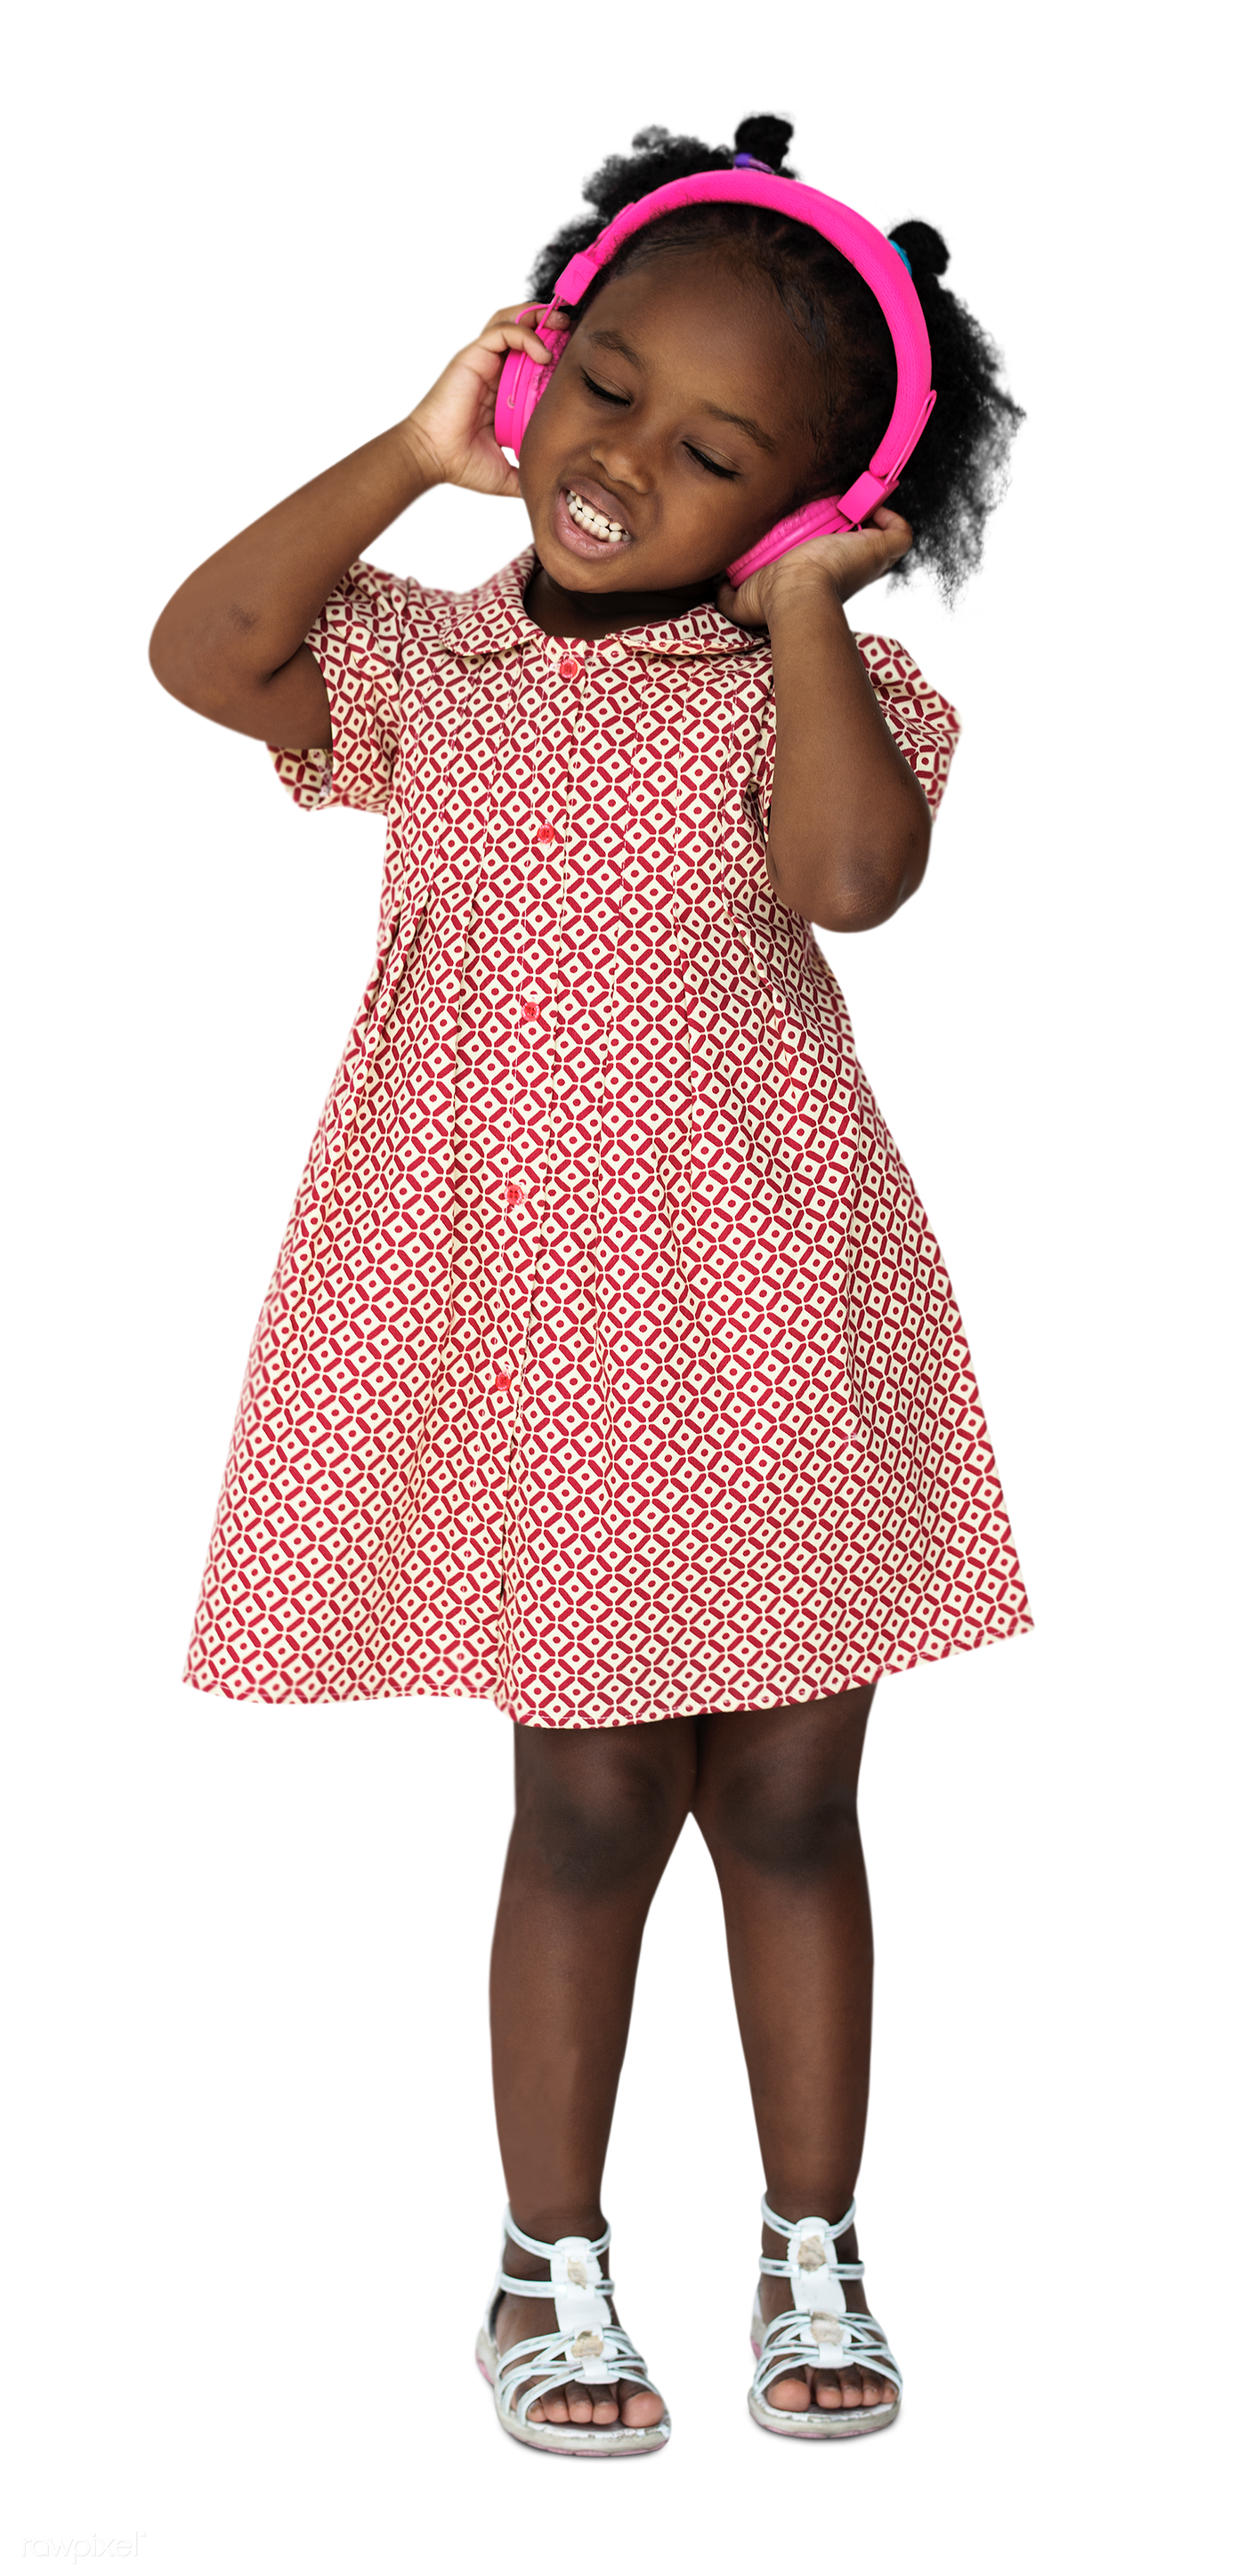 Little Black Girl Png Free Little Black Girl Png Transparent Images 97202 Pngio